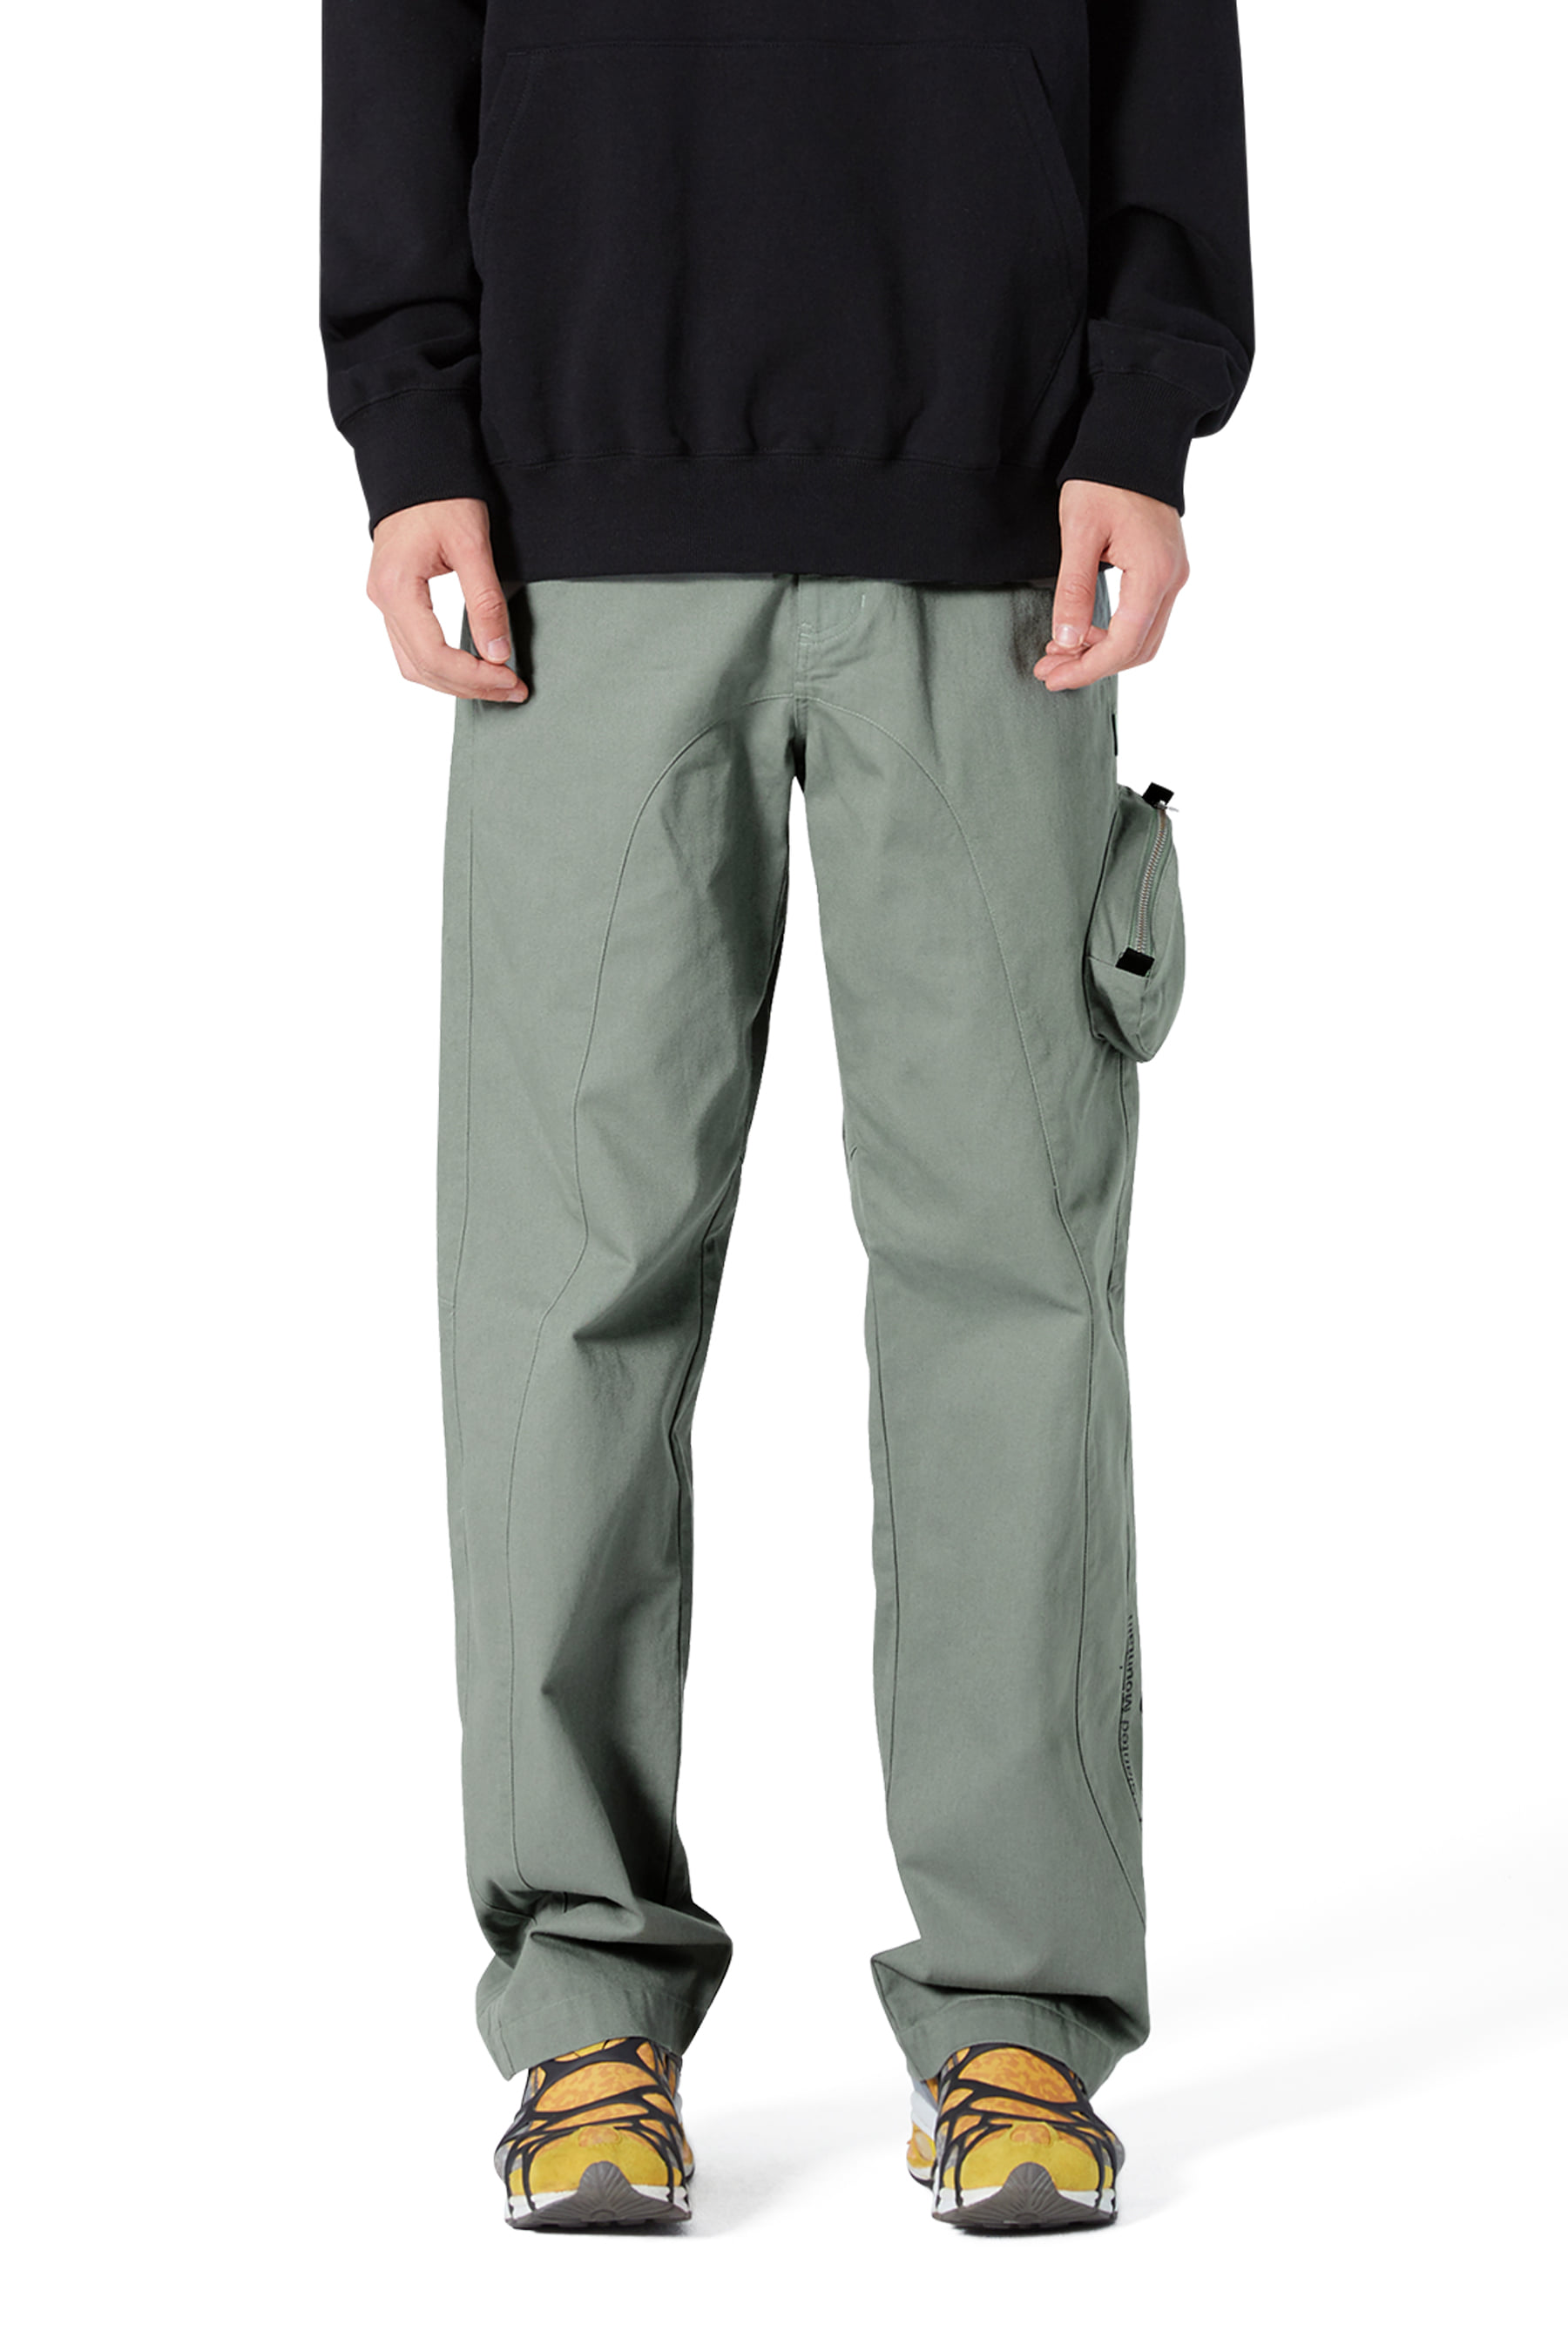 Y.E.S Engineer Pants Jade Green